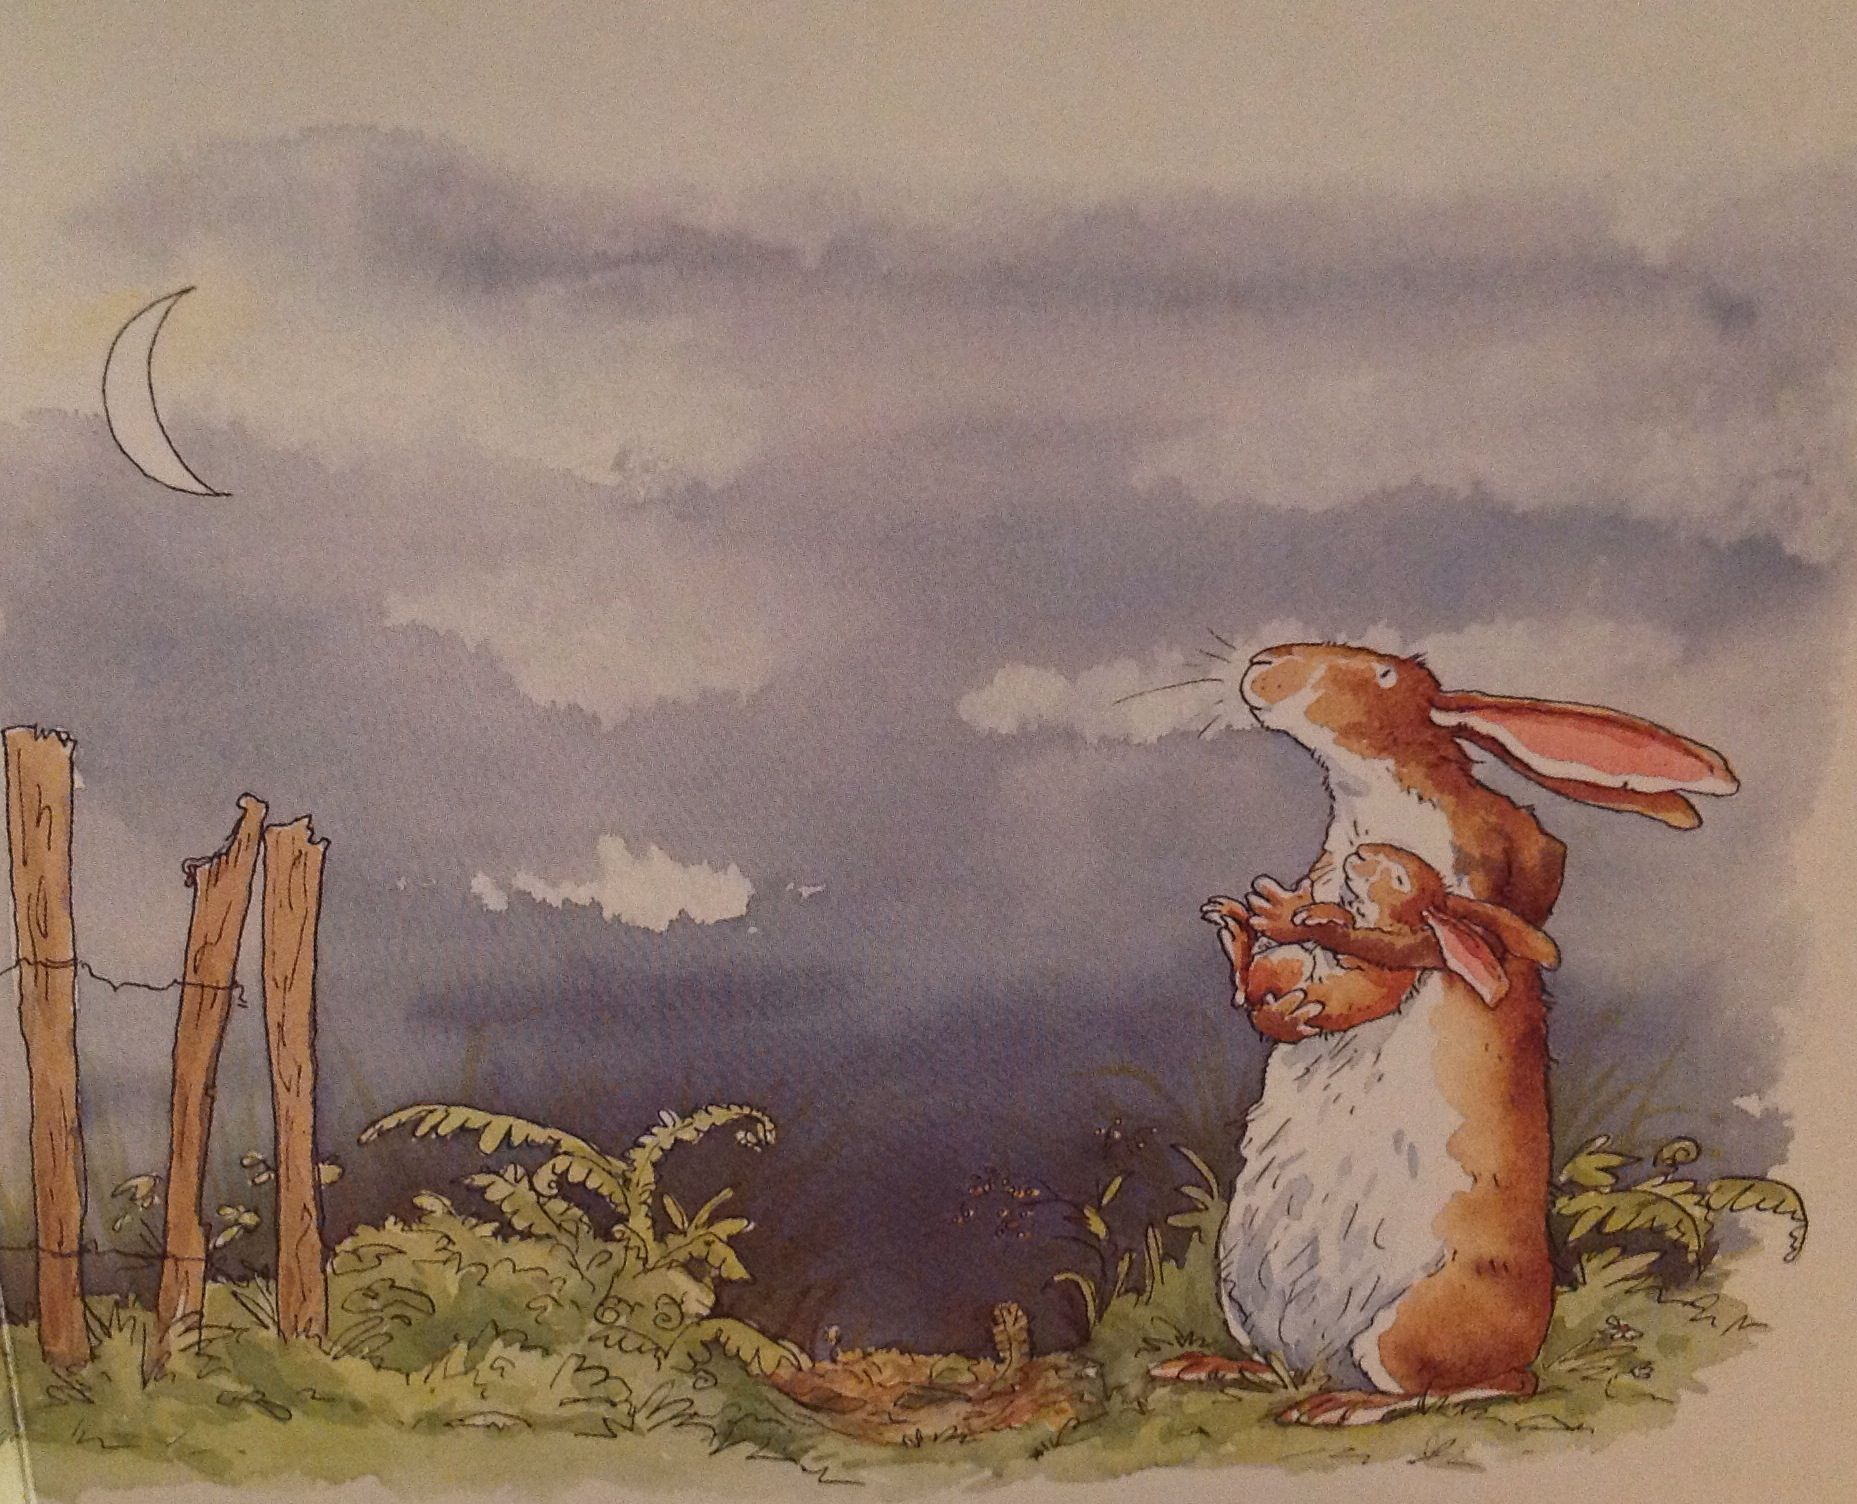 Sky. That's very far, thought Little Nutbrown Hare. He was almost too sleepy to think anymore. Then he looked beyond the thorn bushes, out into the big dark night.  Nothing could be farther than the sky.